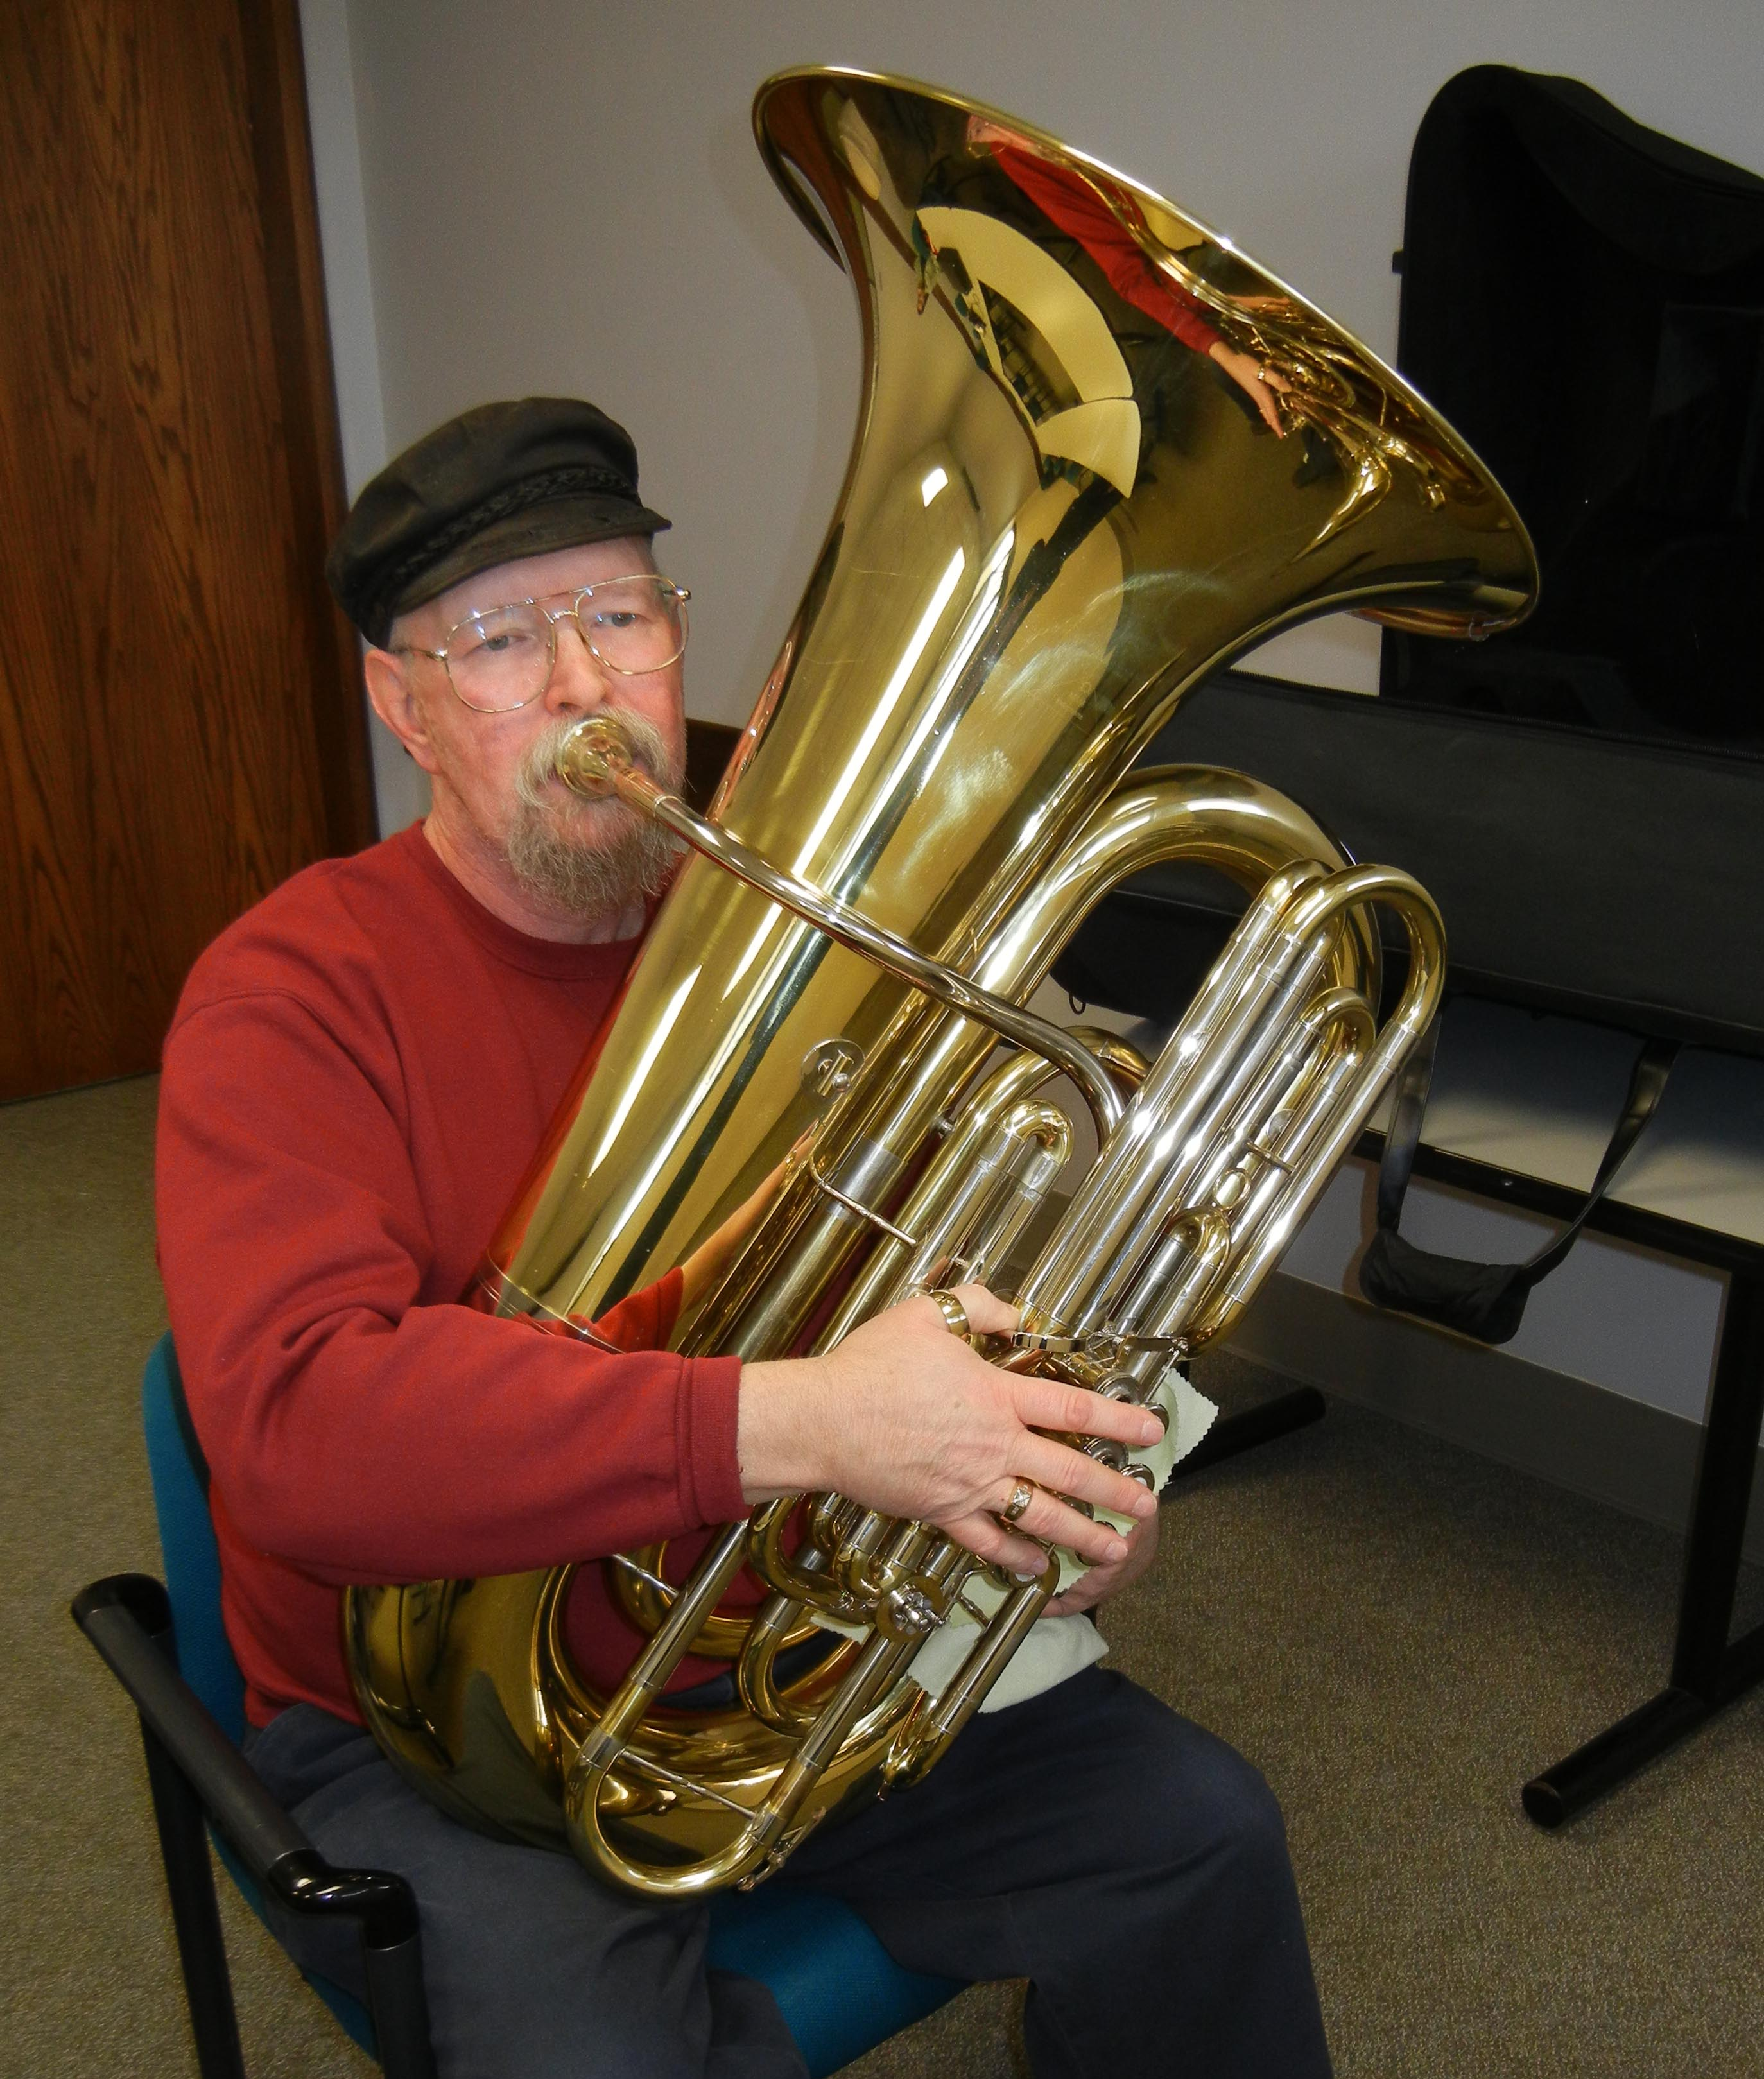 My son plays the tuba at school. I was thinking of buying ...